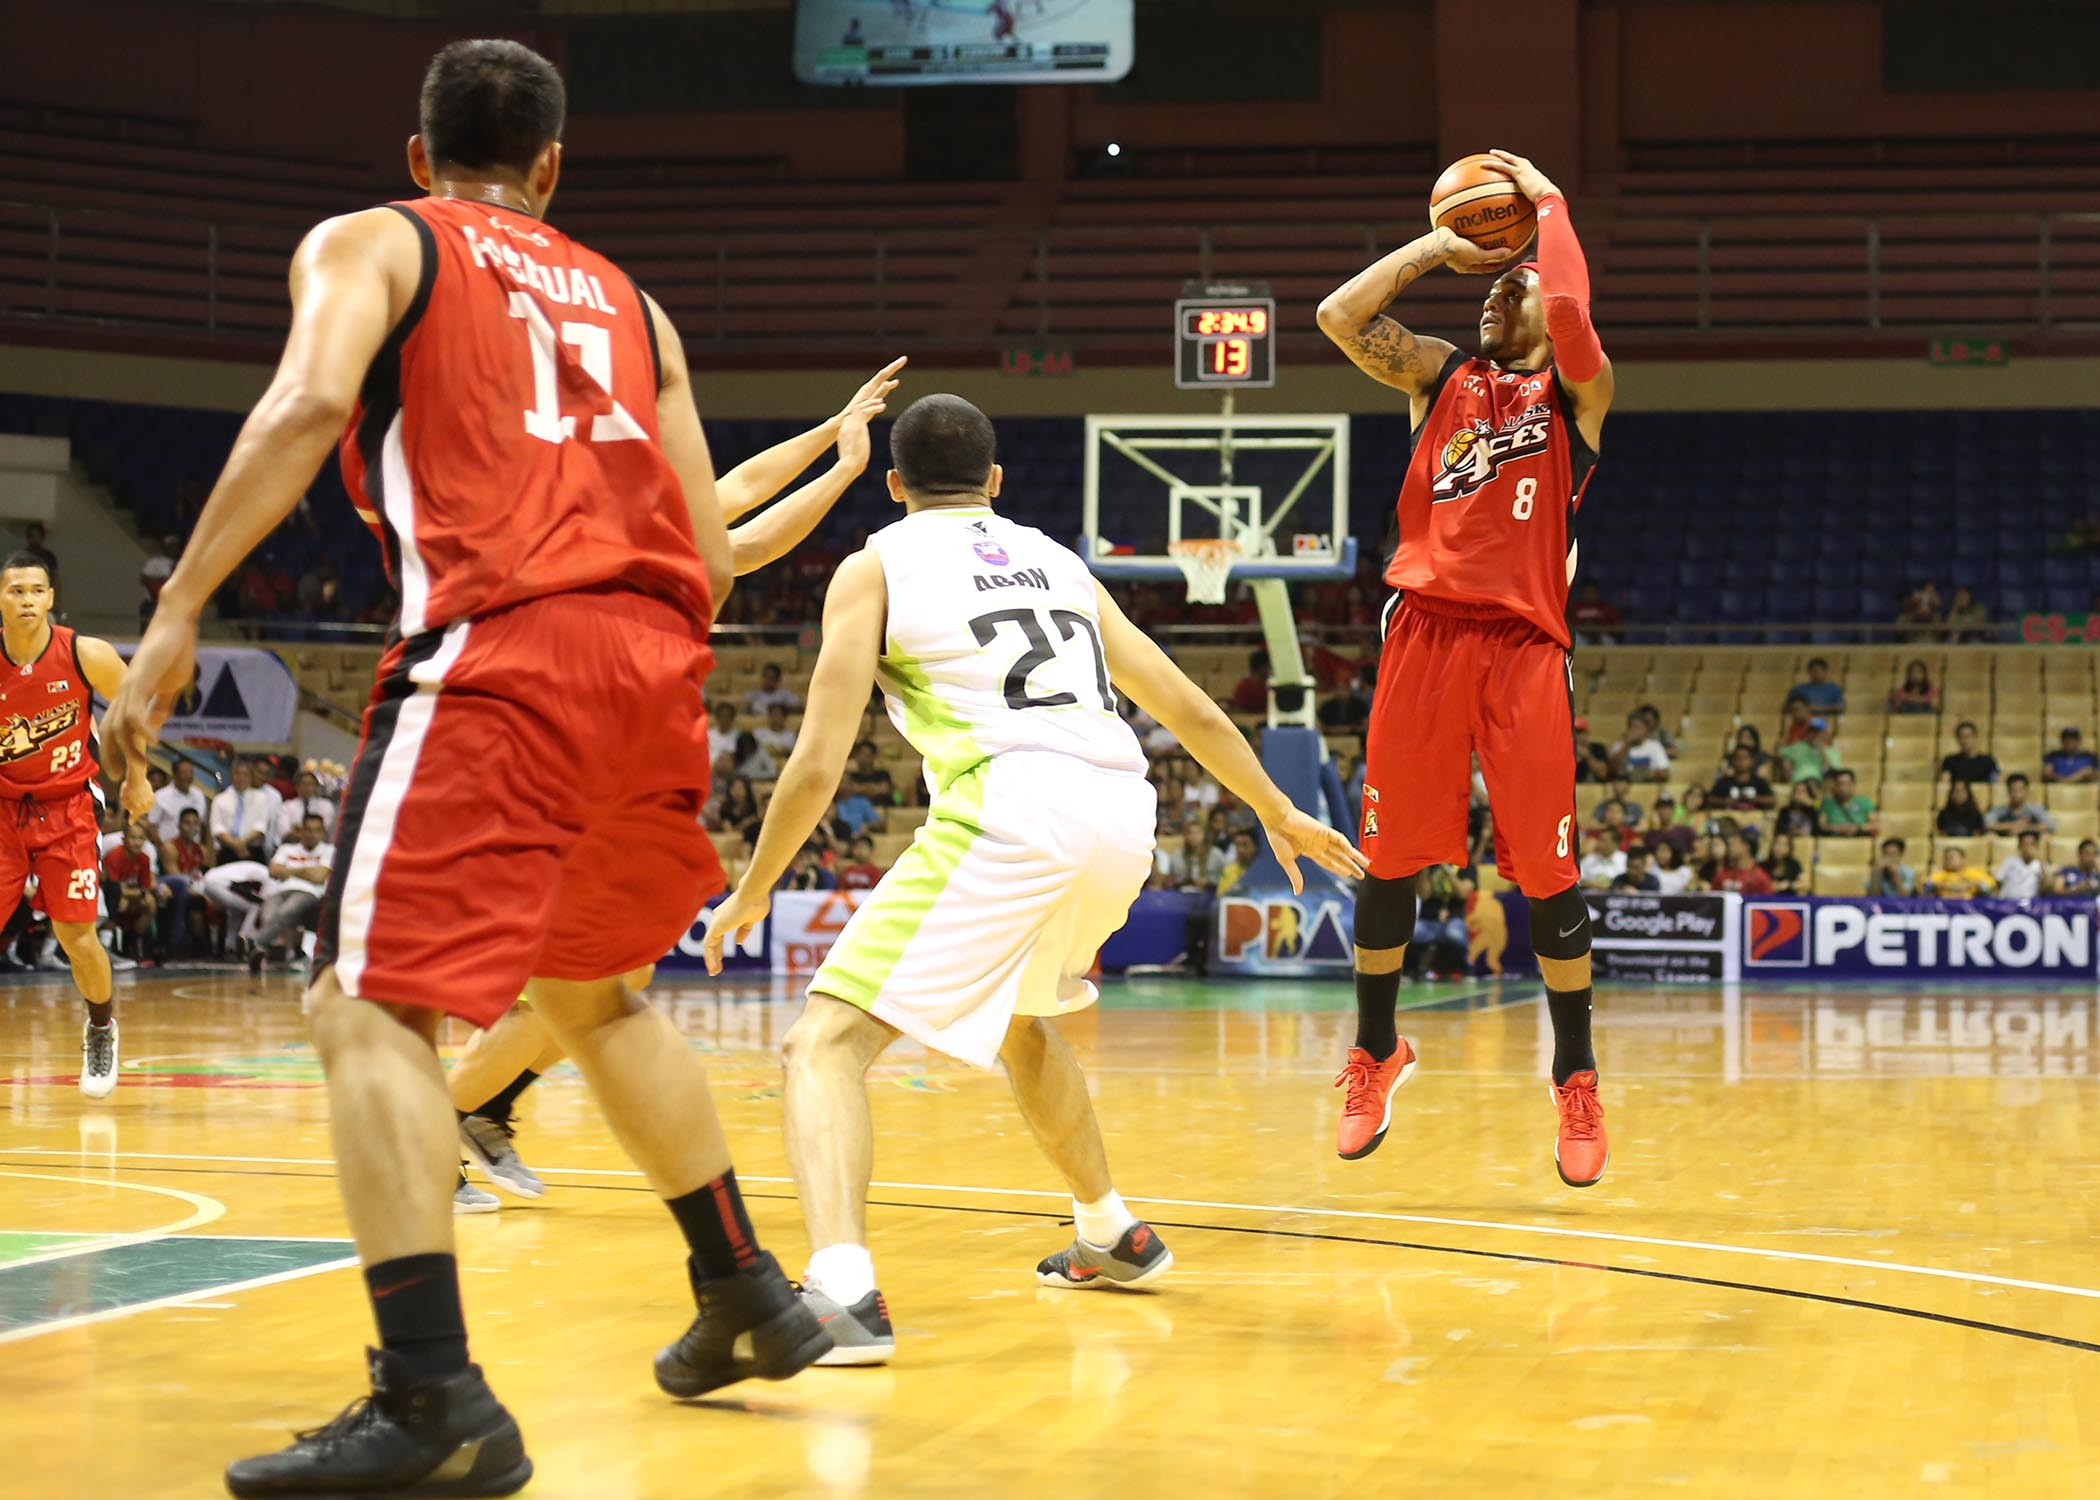 PBA - Alaska vs GlobalPort - March 18, 2017 - KC - 3